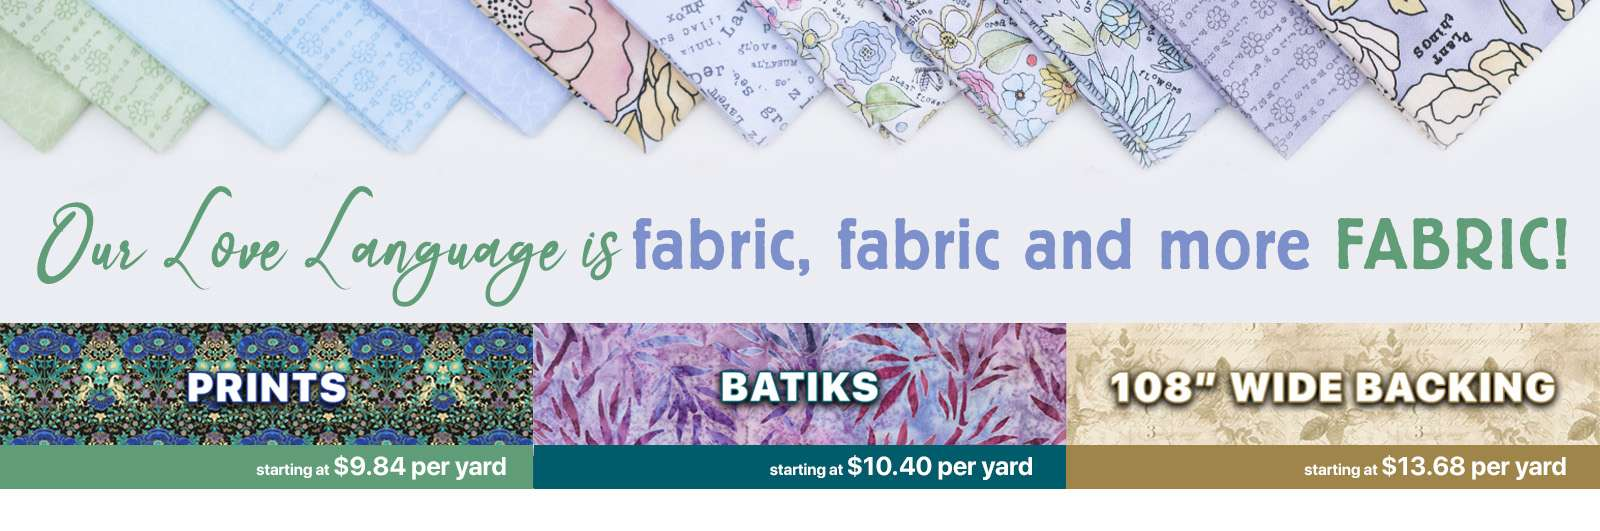 Shop our new catalogOur LOVE language is fabric, fabric and more FABRIC!